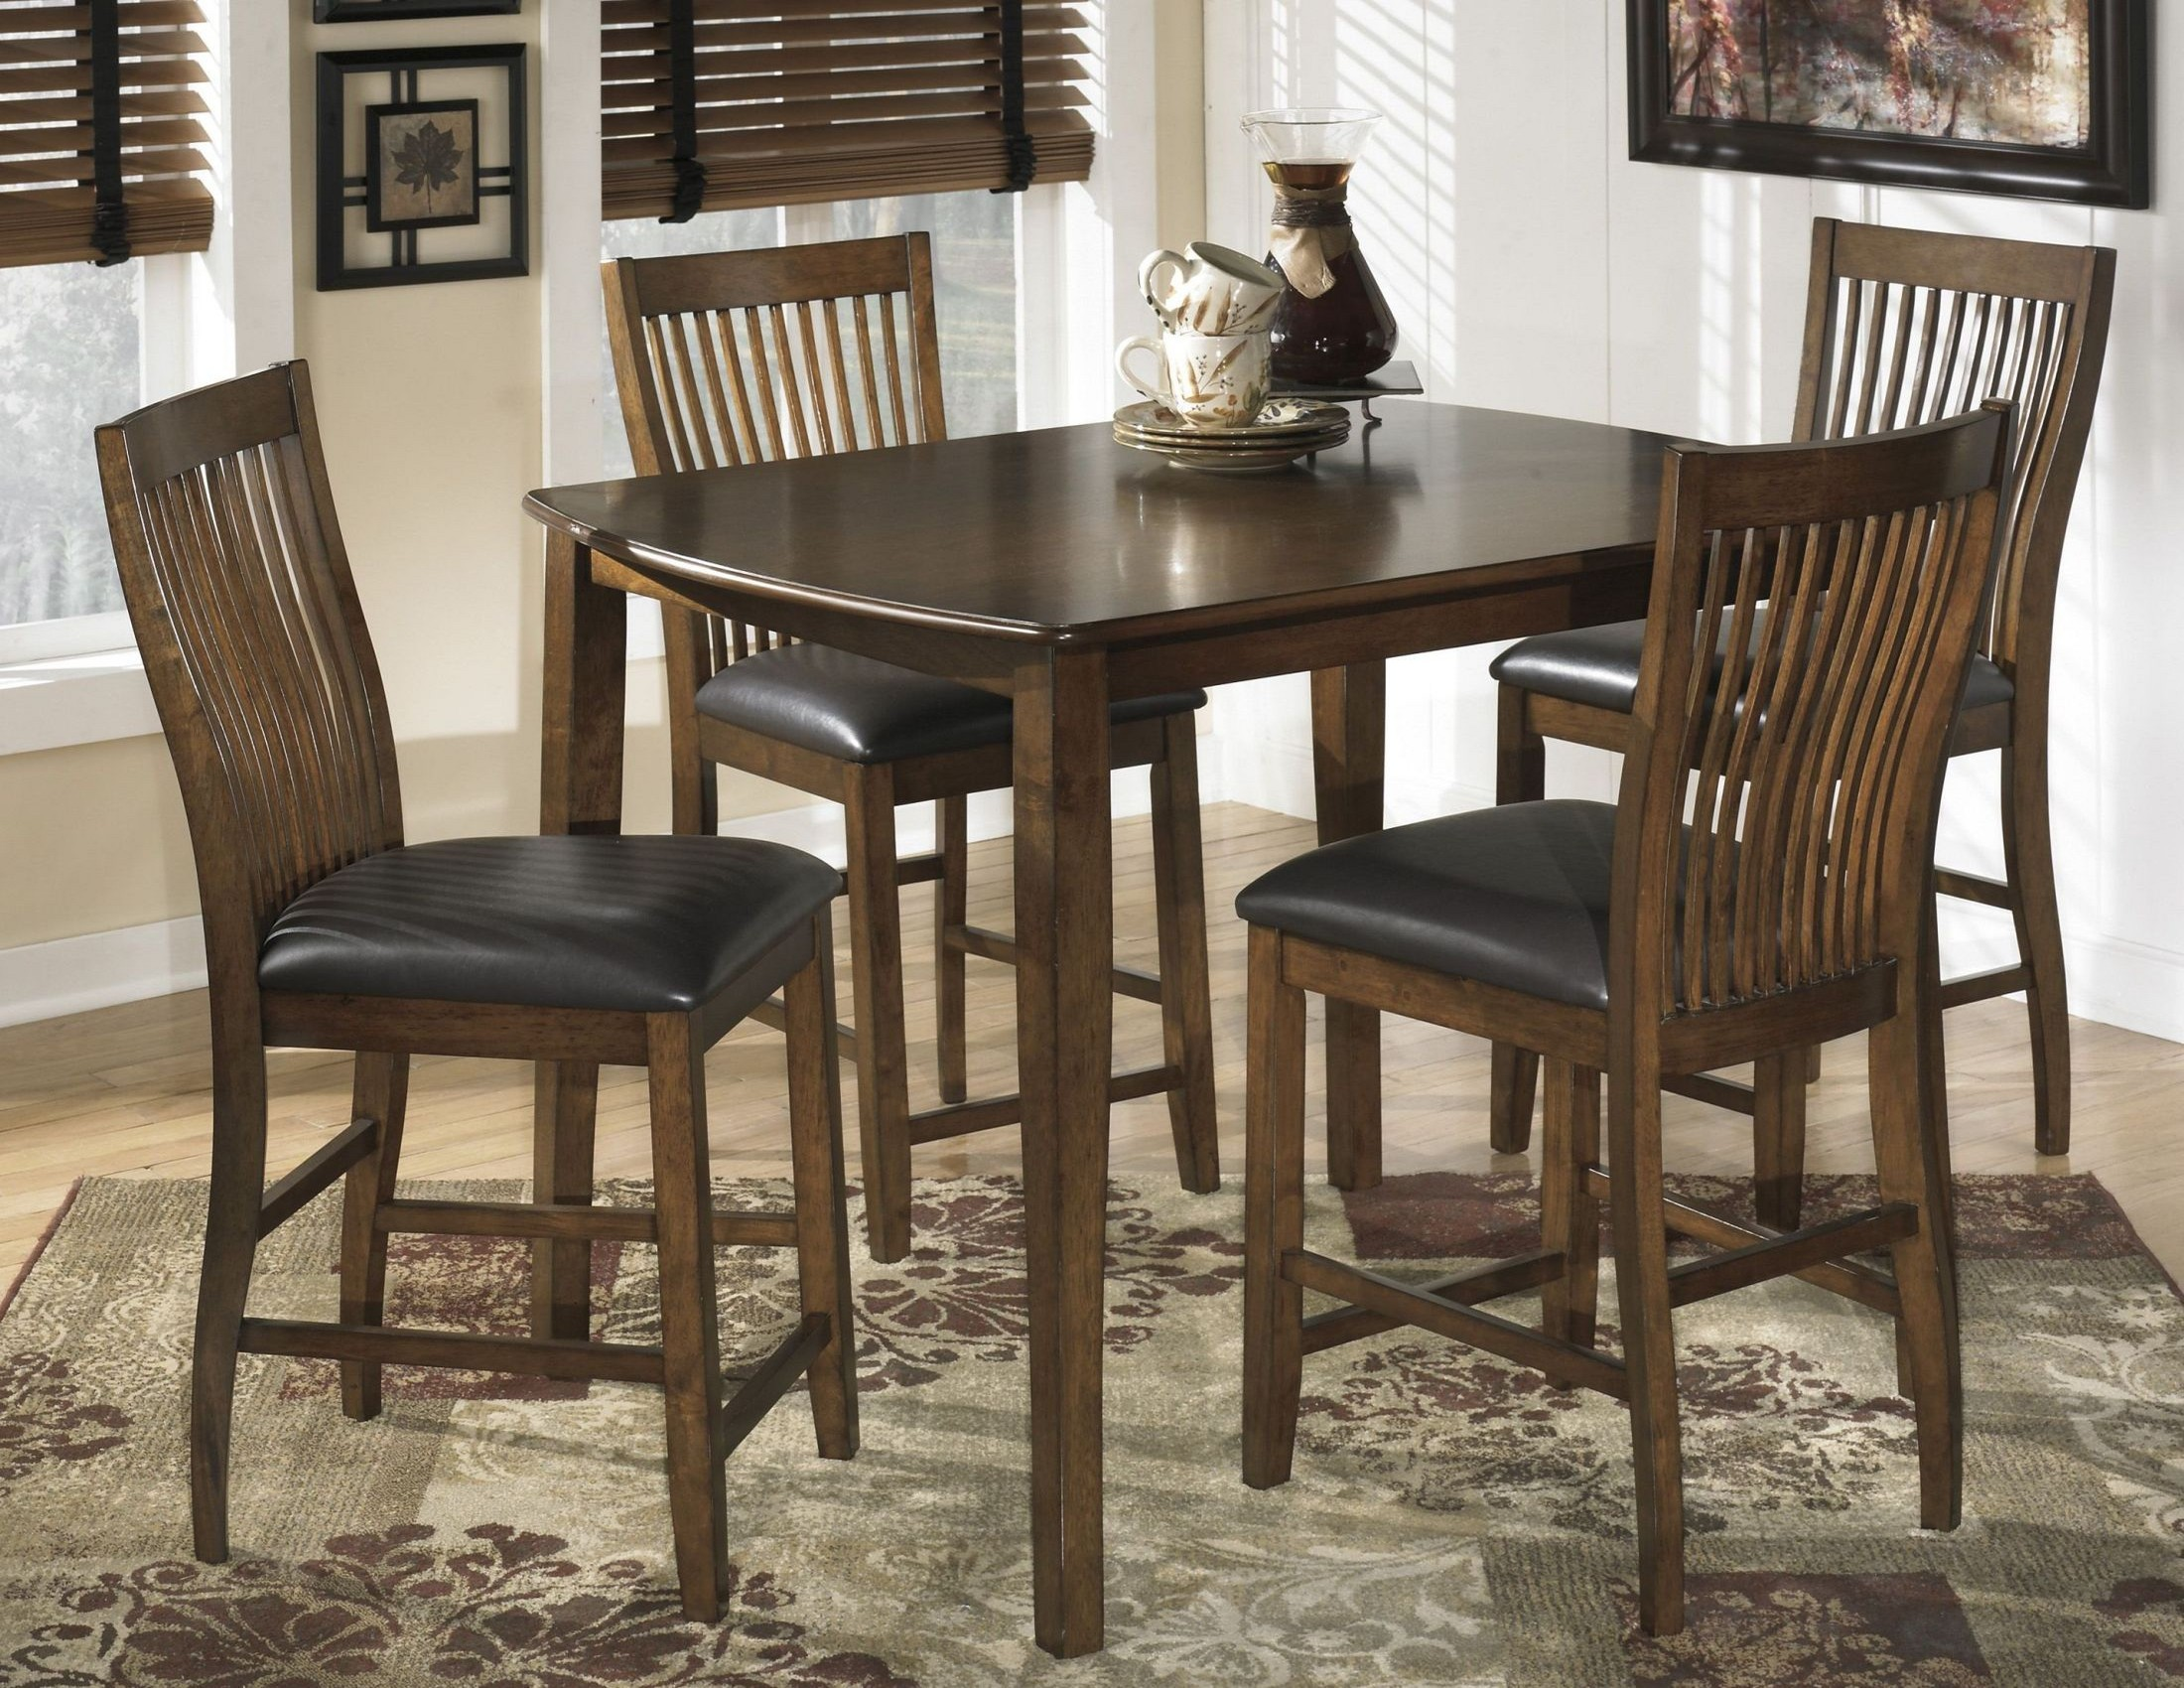 stuman rectangular dining room counter table set from ashley d293 223 coleman furniture. Black Bedroom Furniture Sets. Home Design Ideas